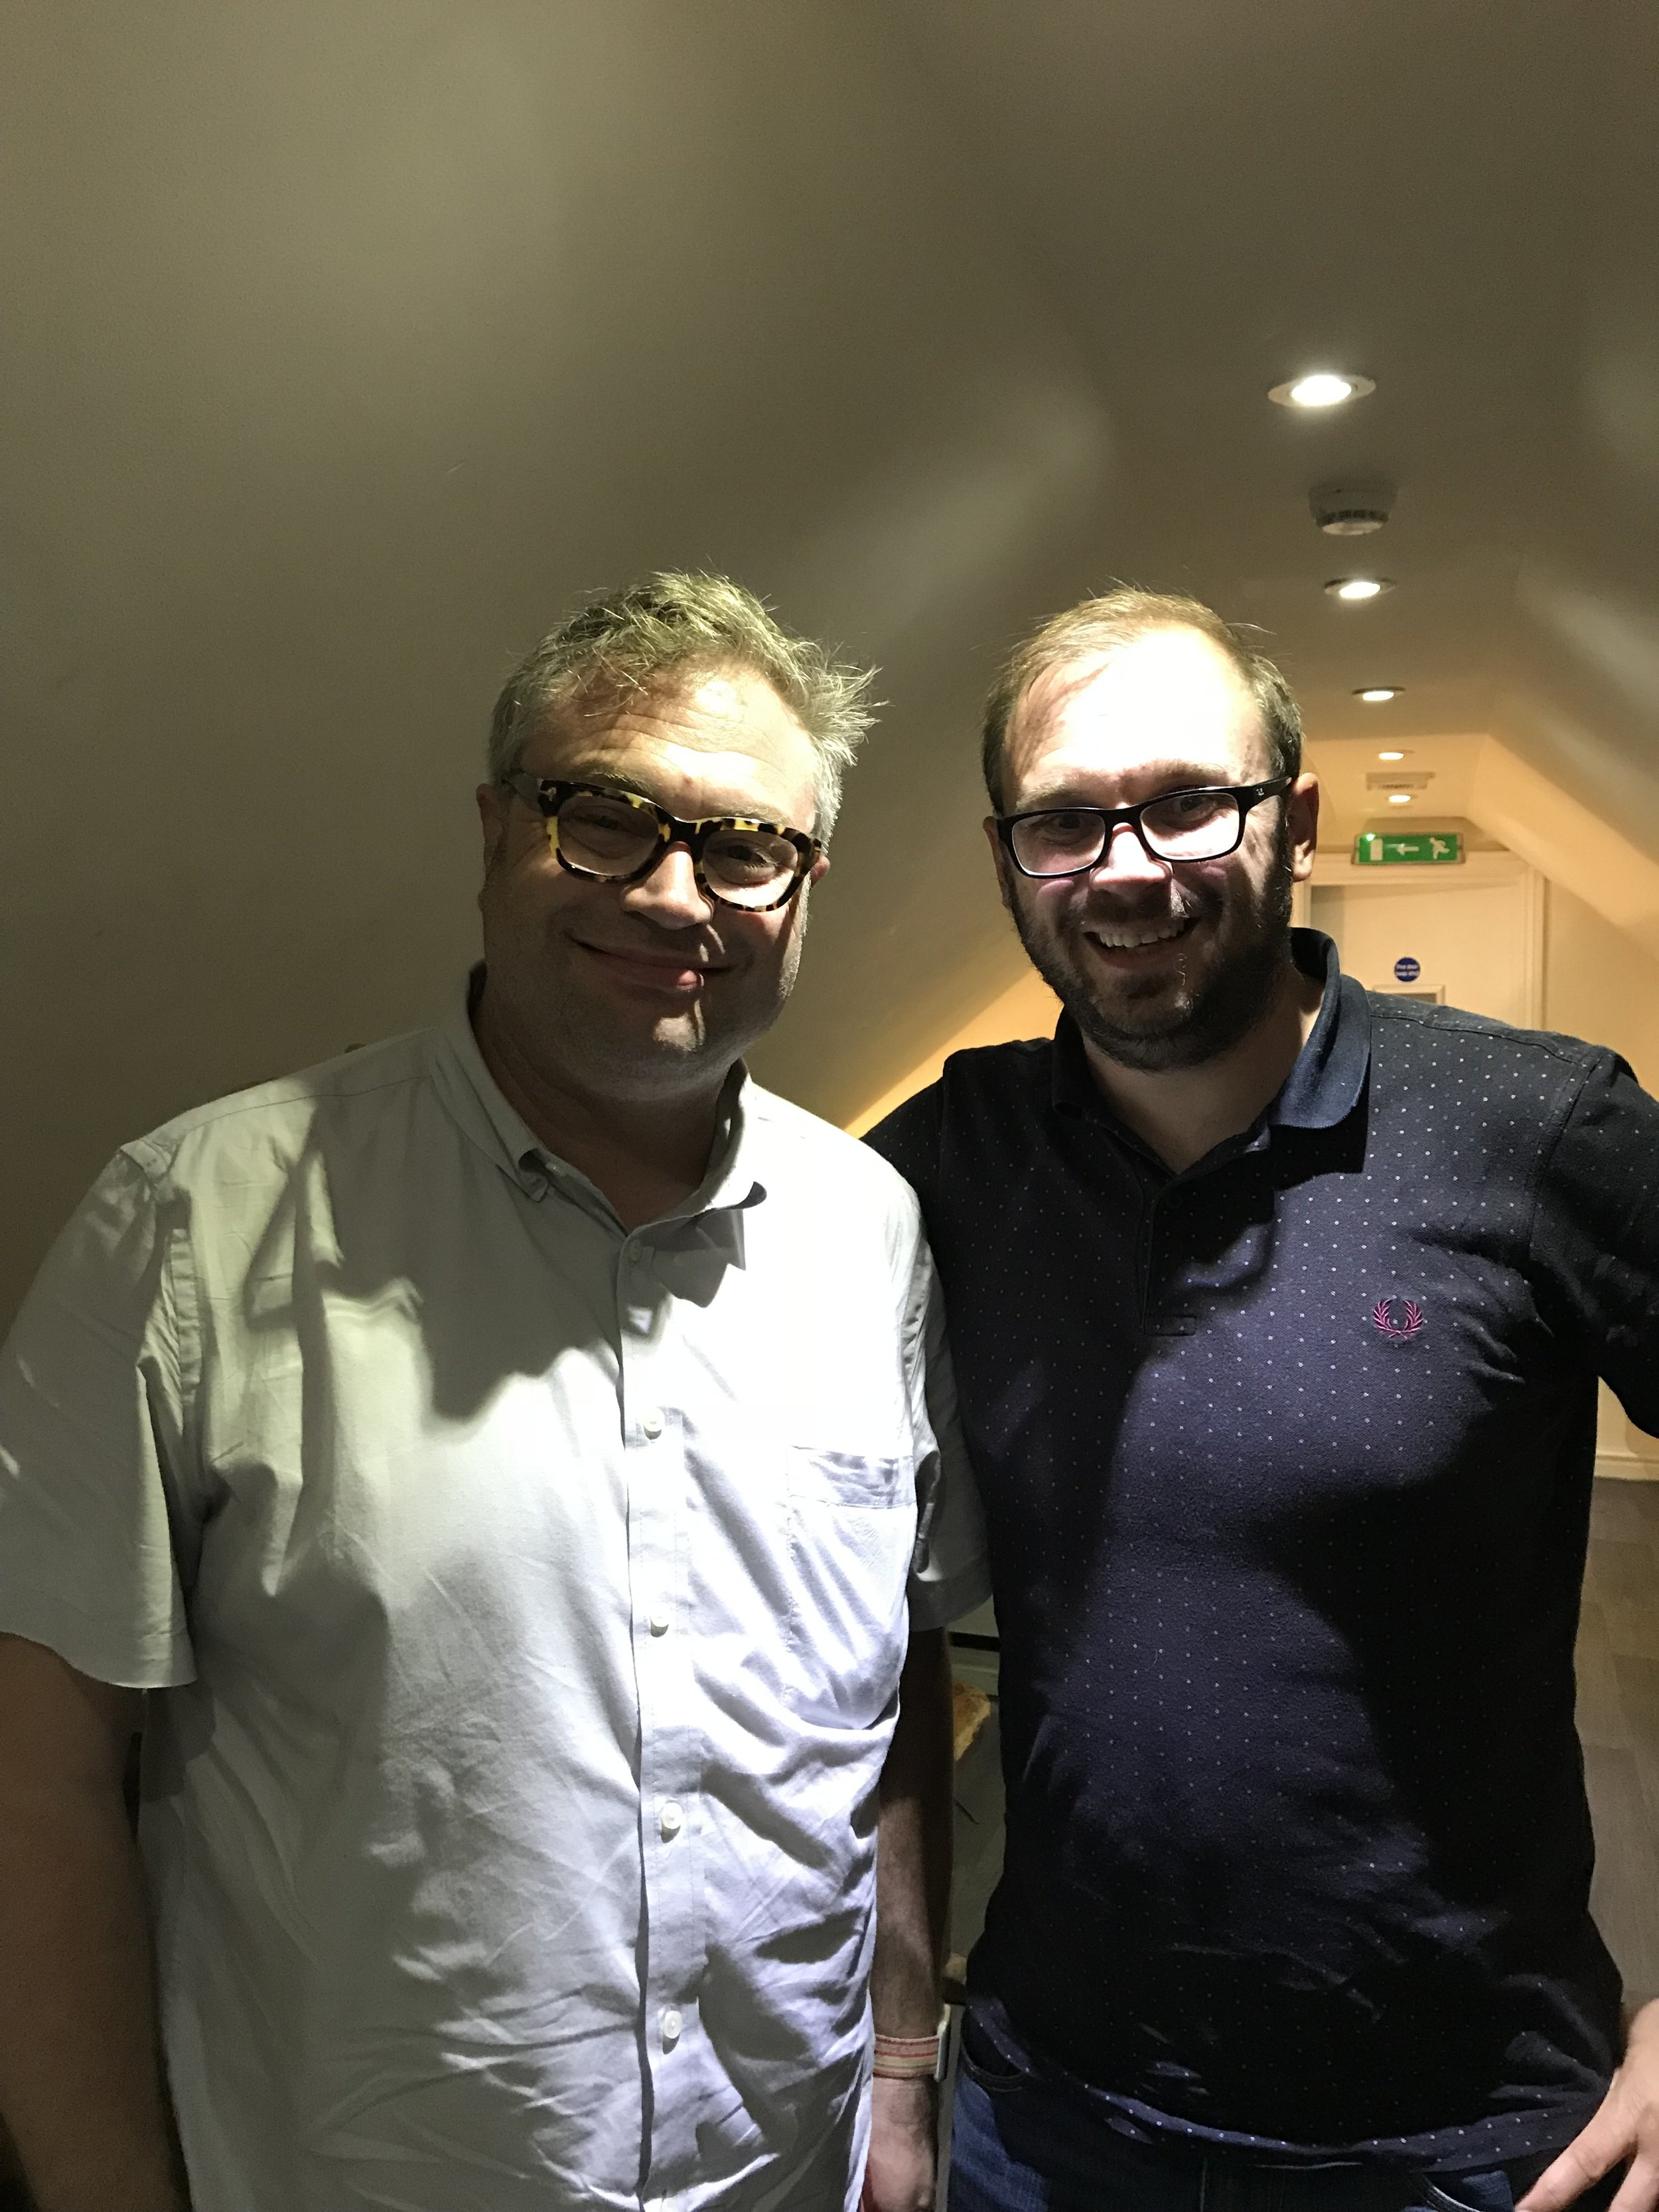 Ben as happy as can be with Steven Page